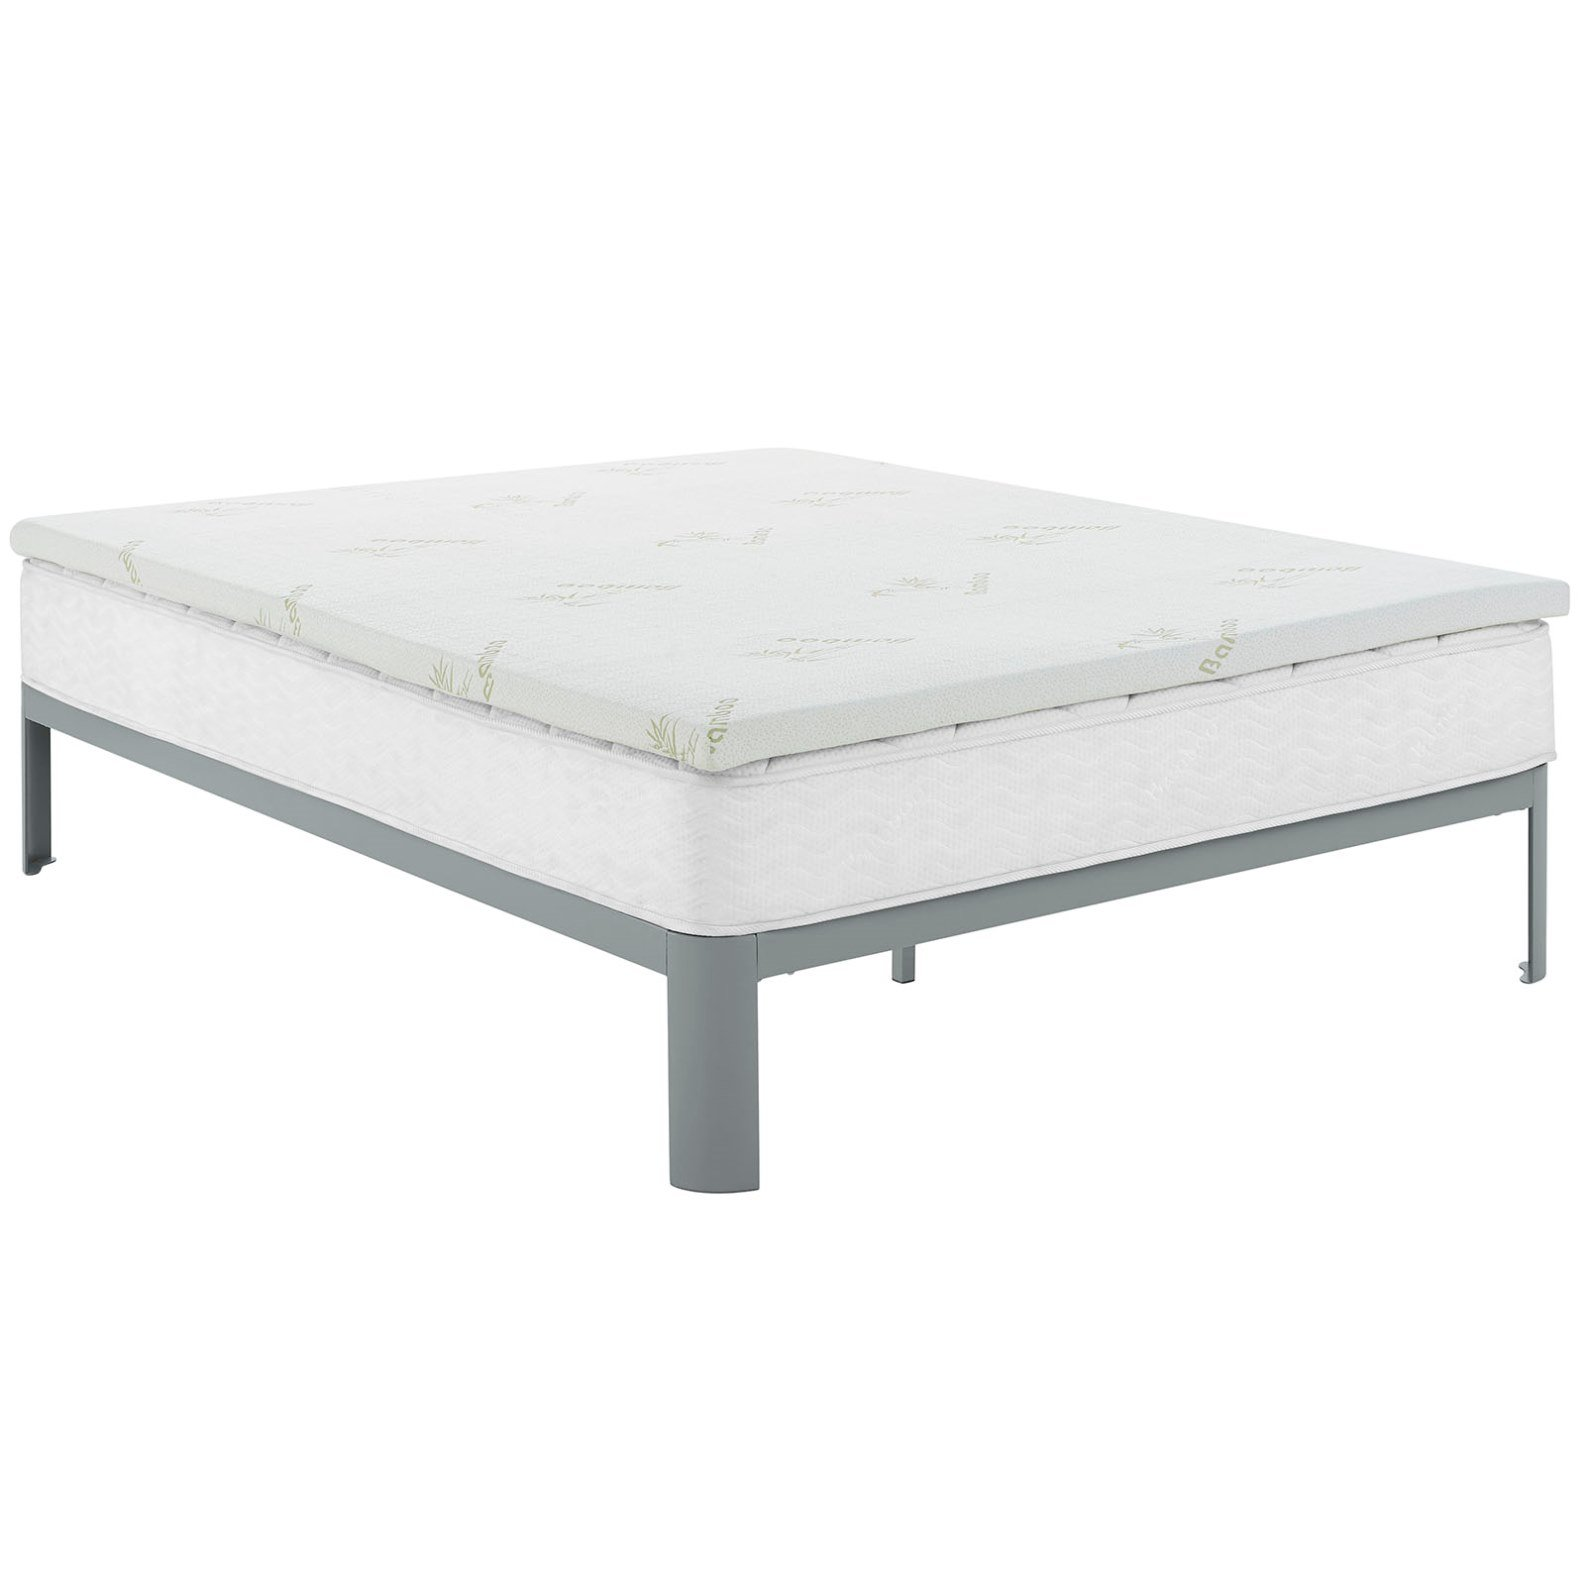 Modern Contemporary Urban Design Bedroom Full Size 2inch Memory Foam Mattress, White, Fabric